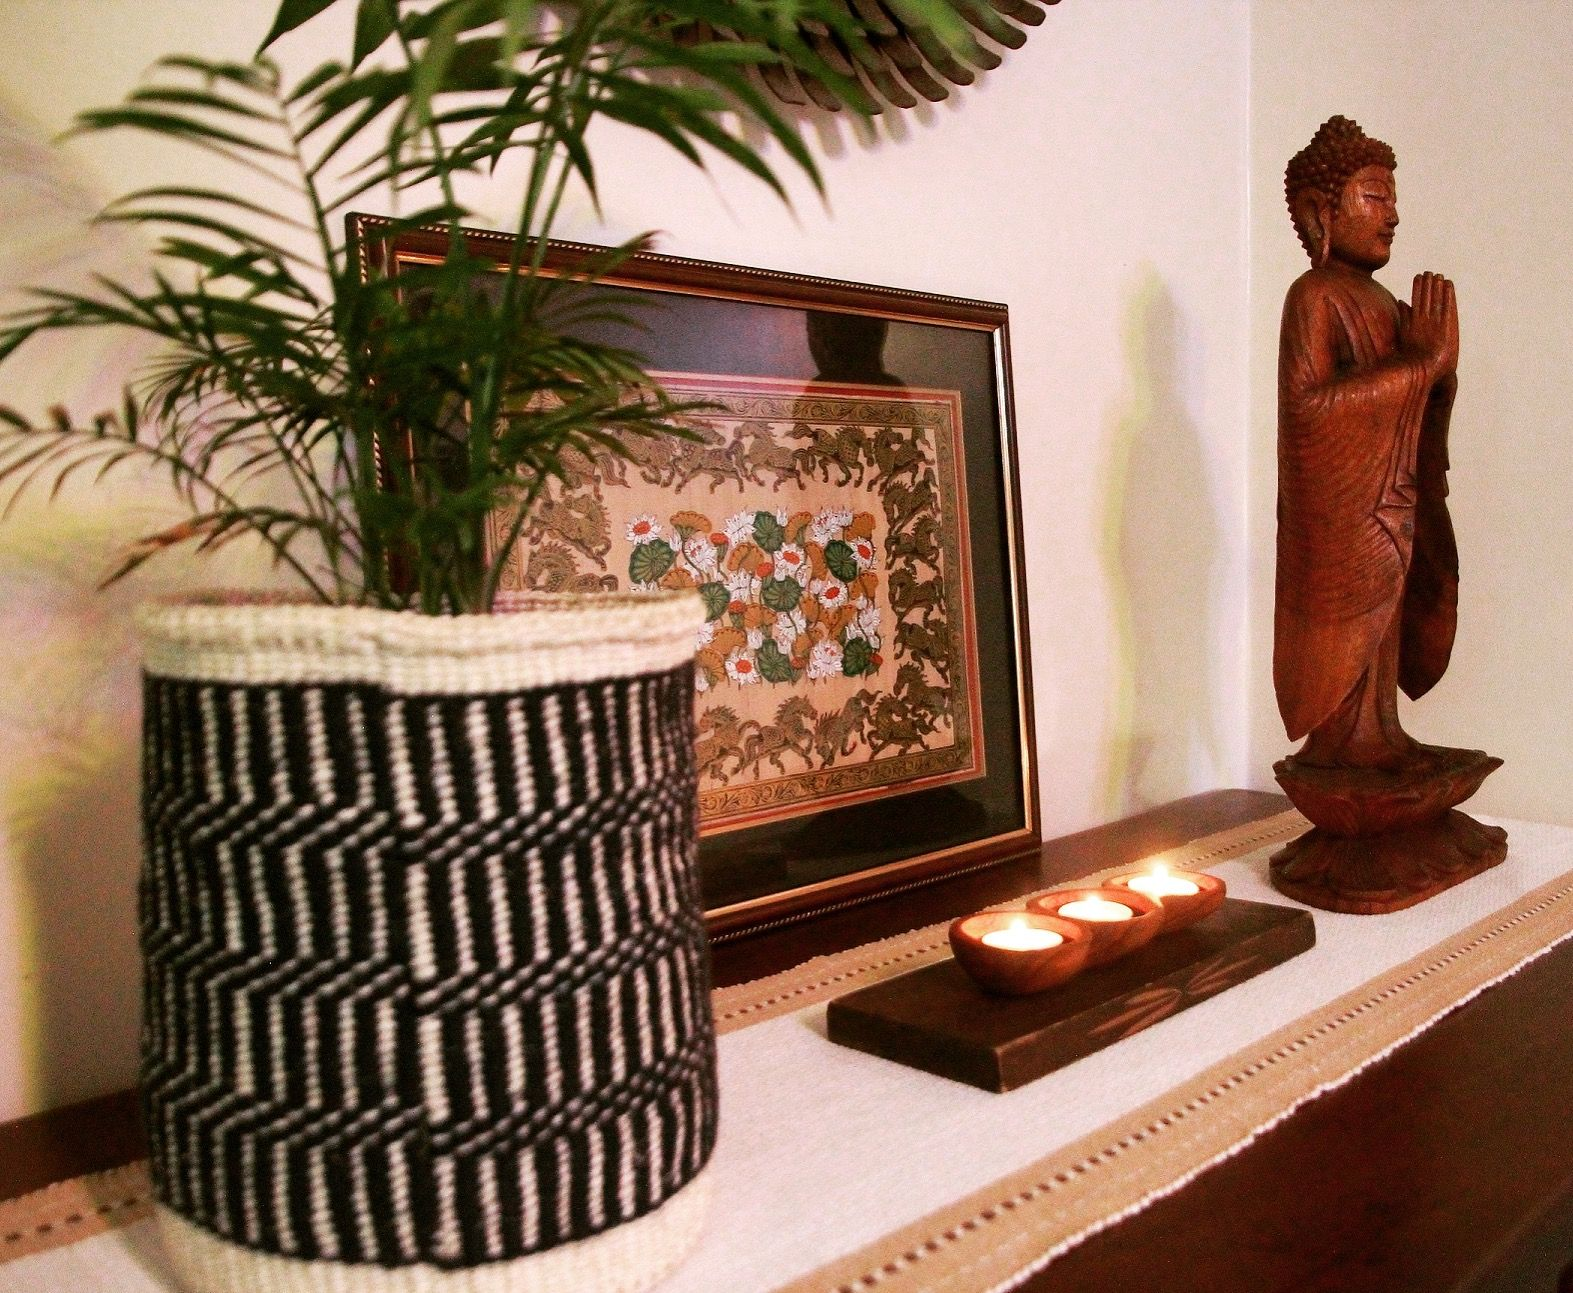 Zen Corner Of Our Home!! Balinese Buddha, Indian Pata